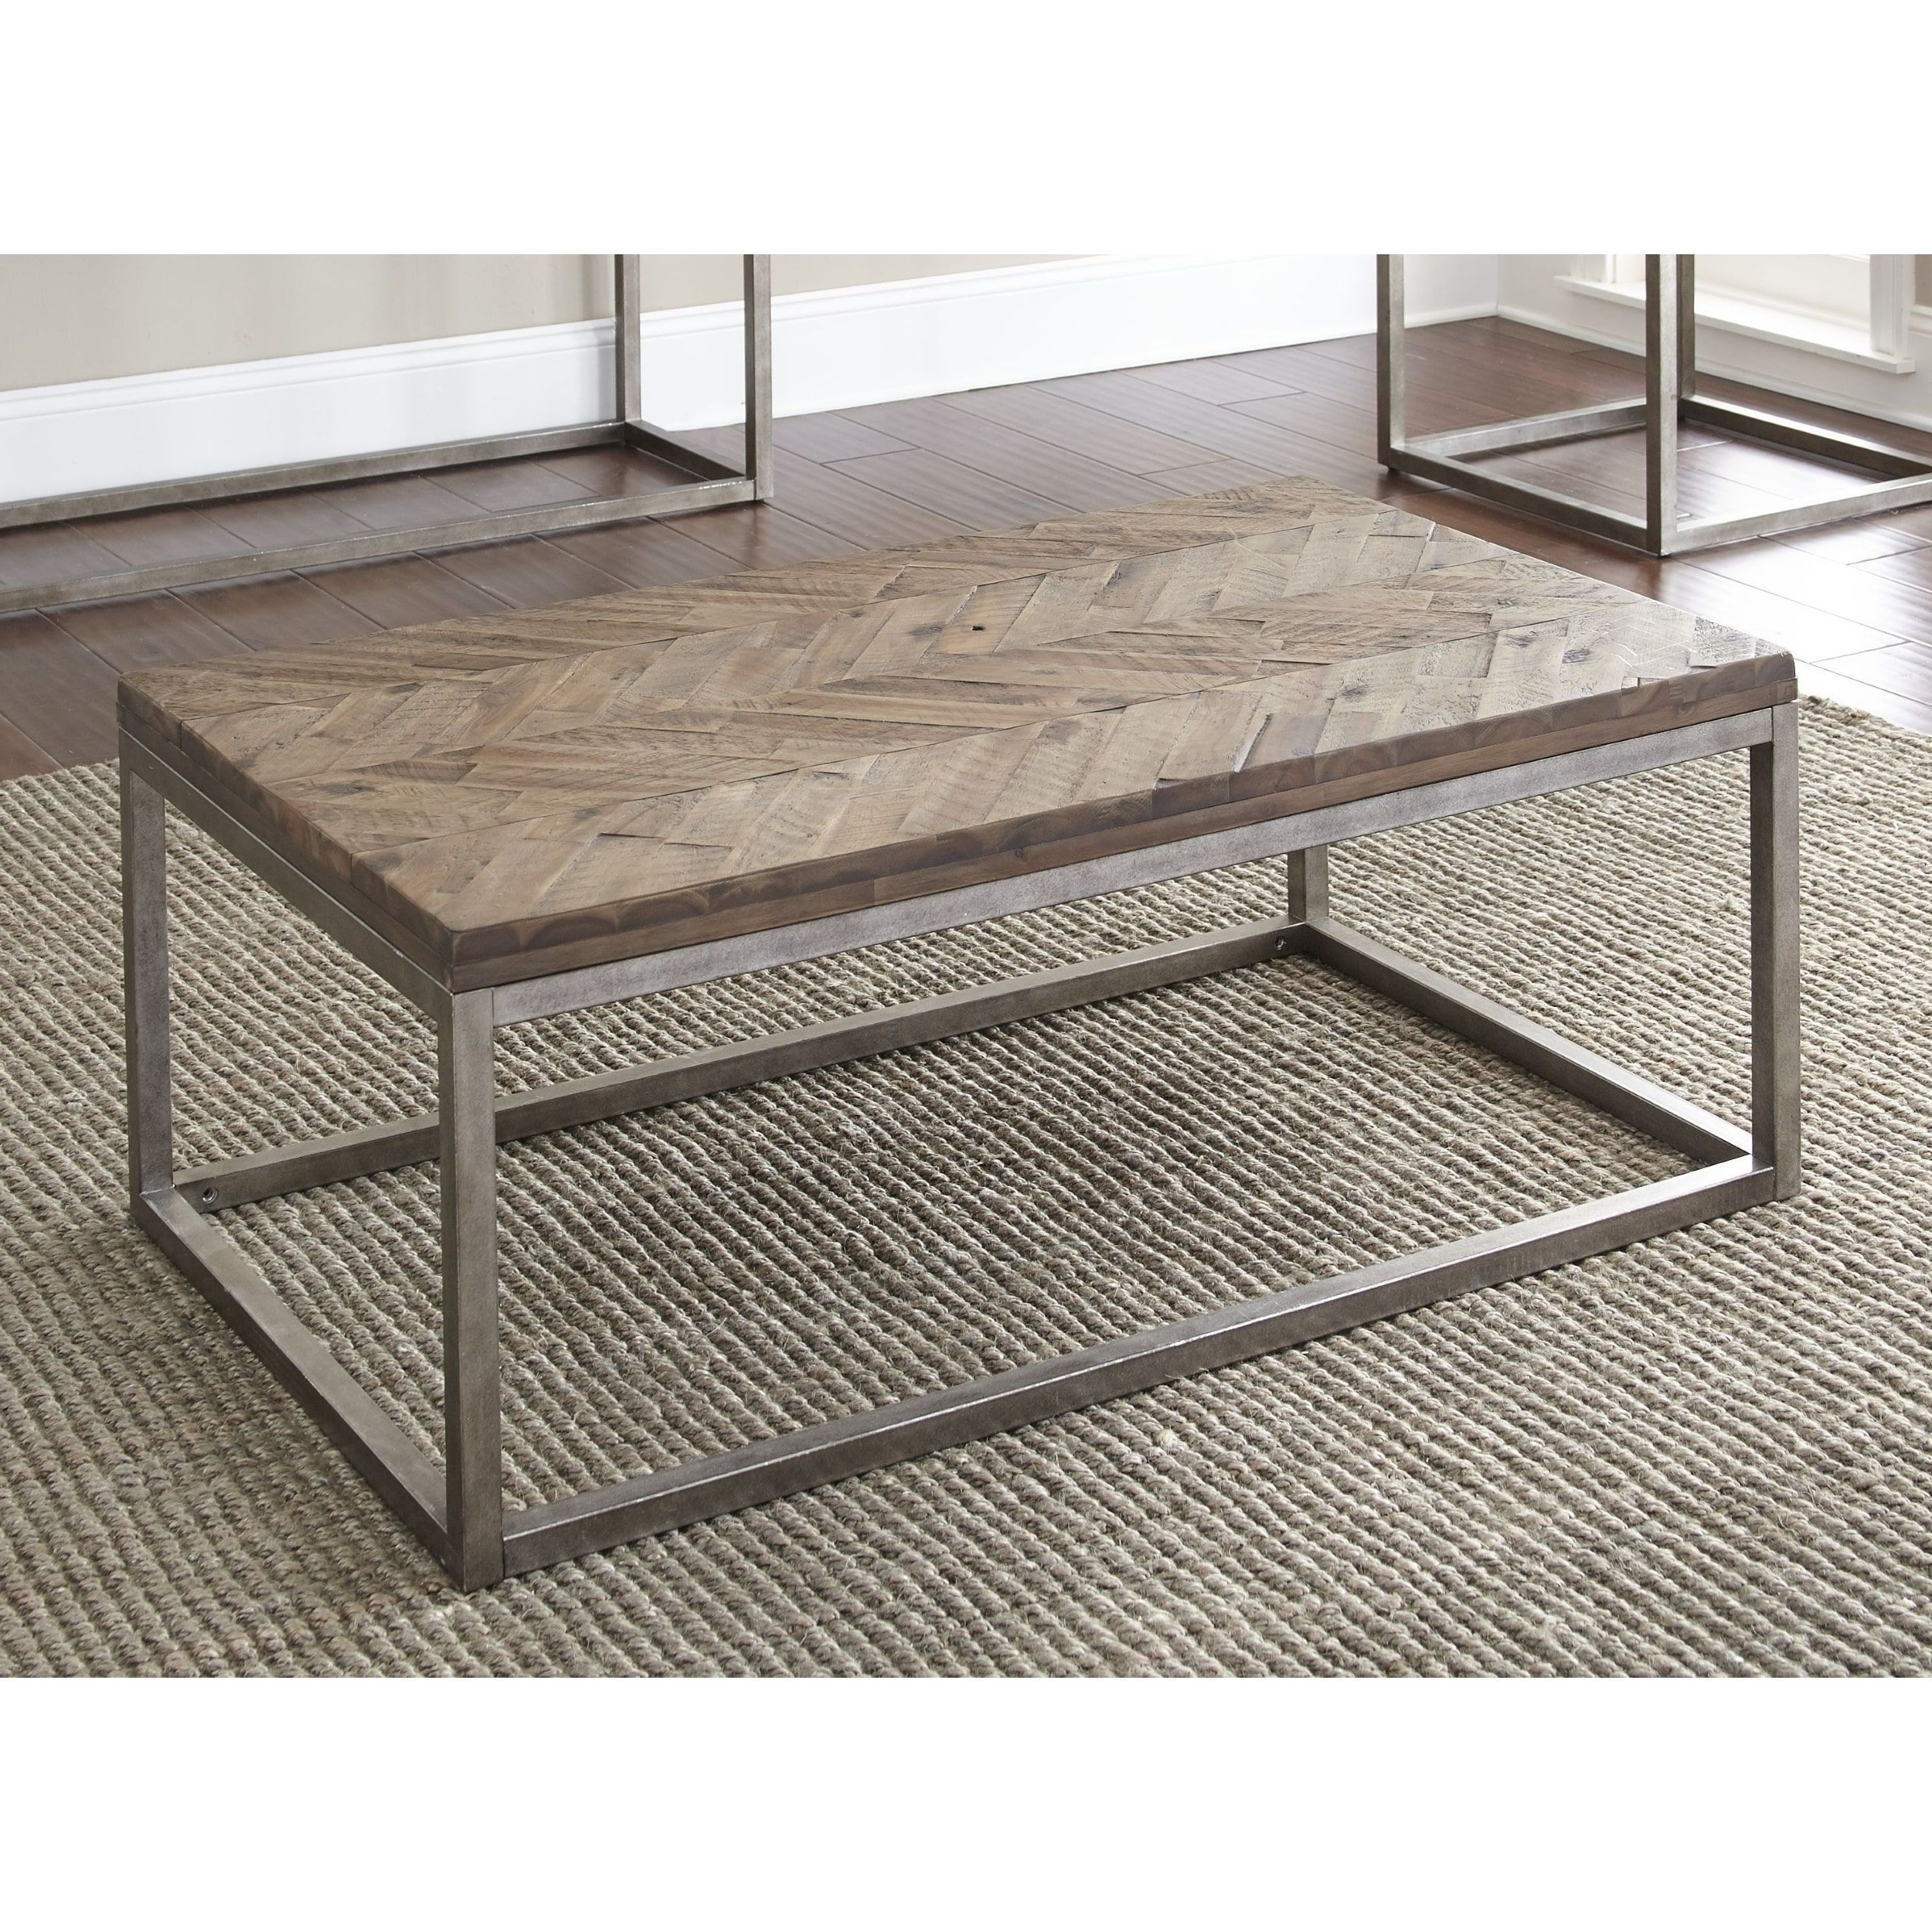 Lockwood 48 Inch Rectangle Coffee Tablegreyson Living Intended For Favorite Lockwood Rectangle Coffee Tables (View 12 of 20)